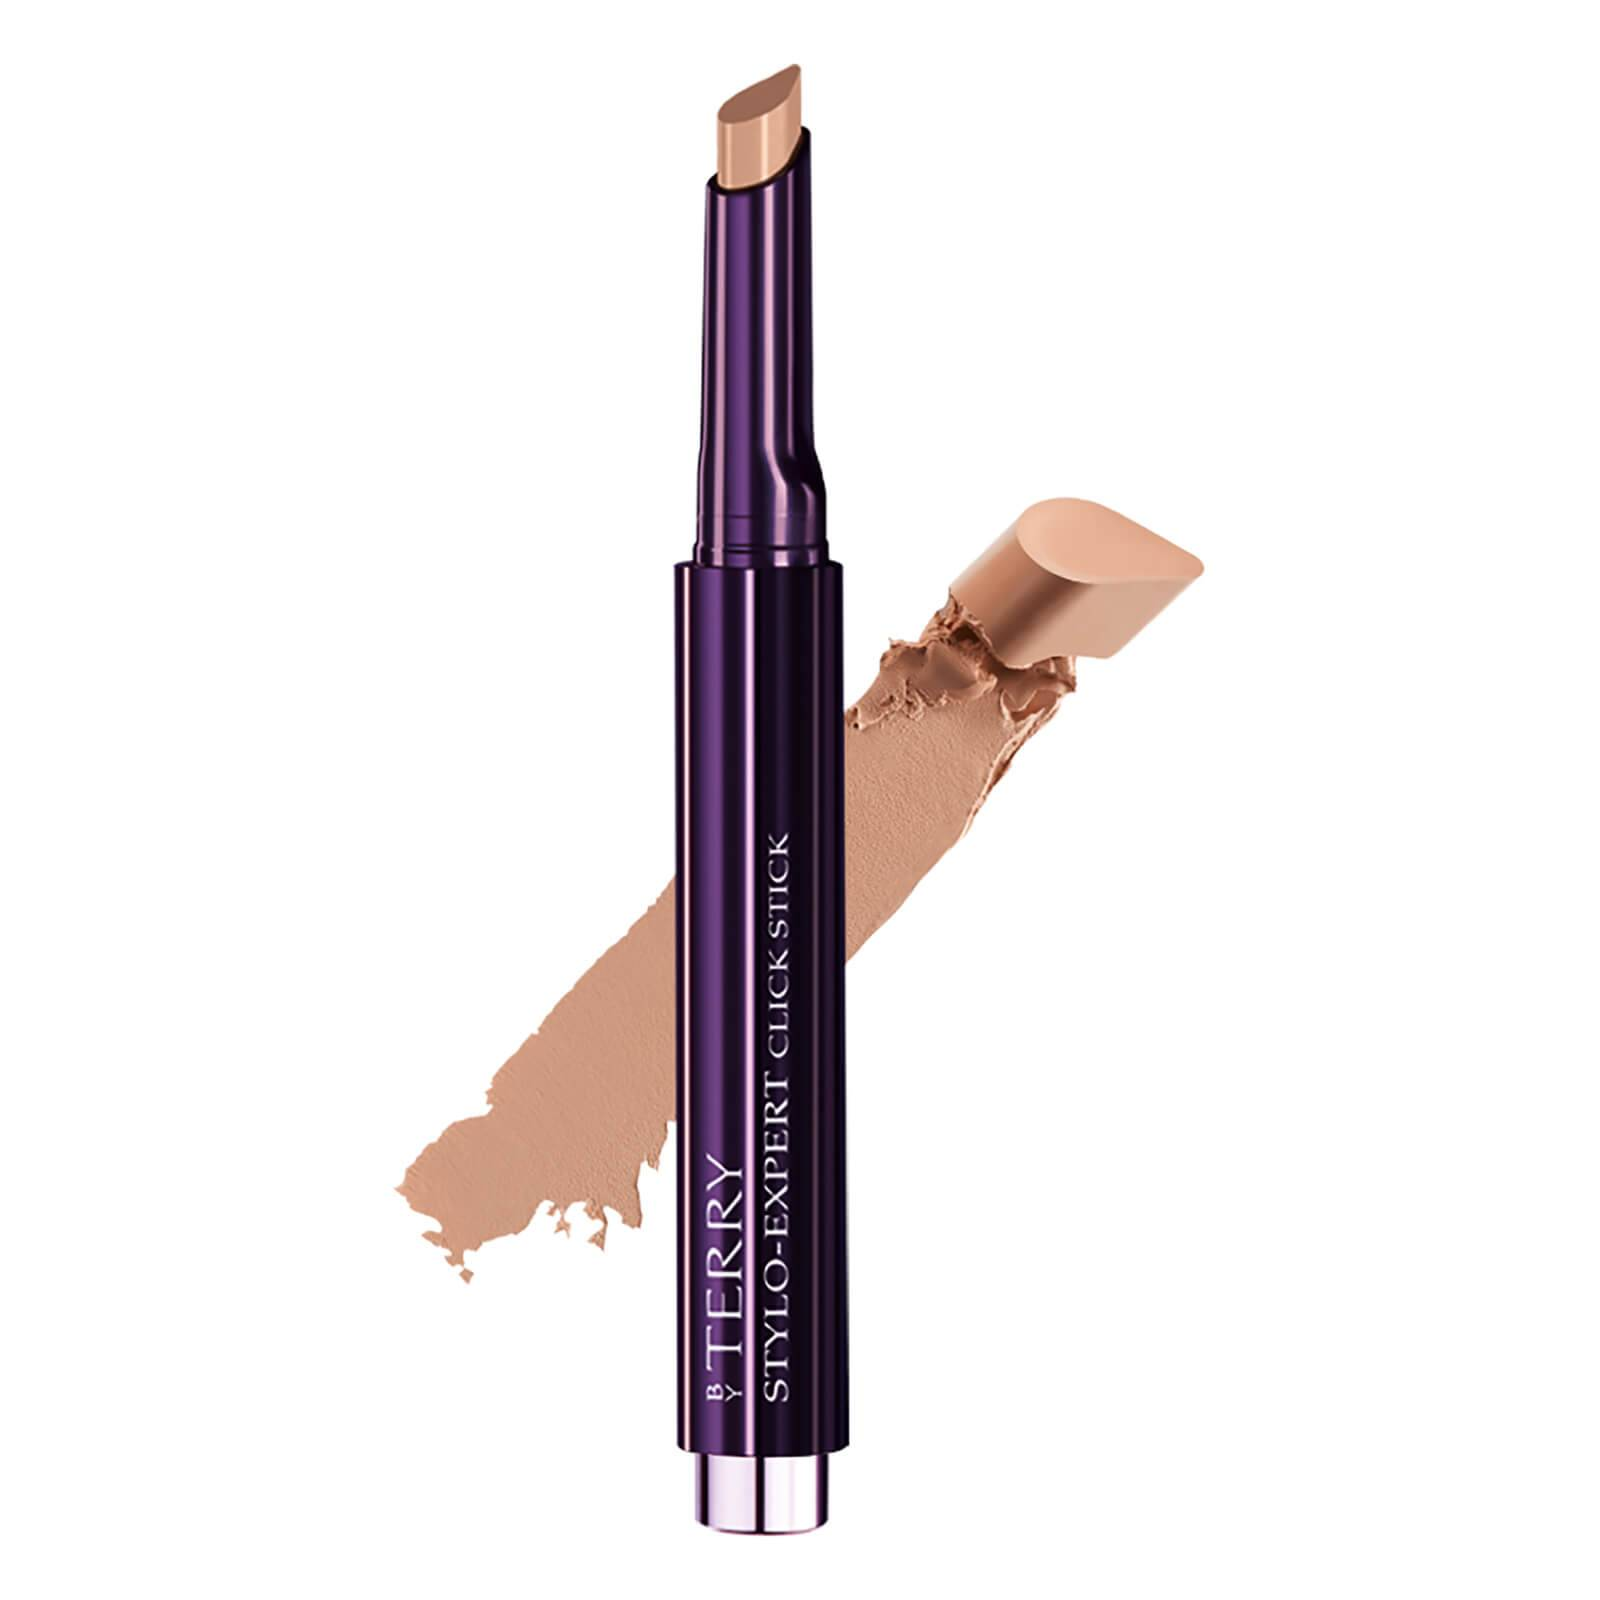 By Terry Stylo-Expert Click Stick Concealer 1g (Various Shades) - No.1 Rosy Light